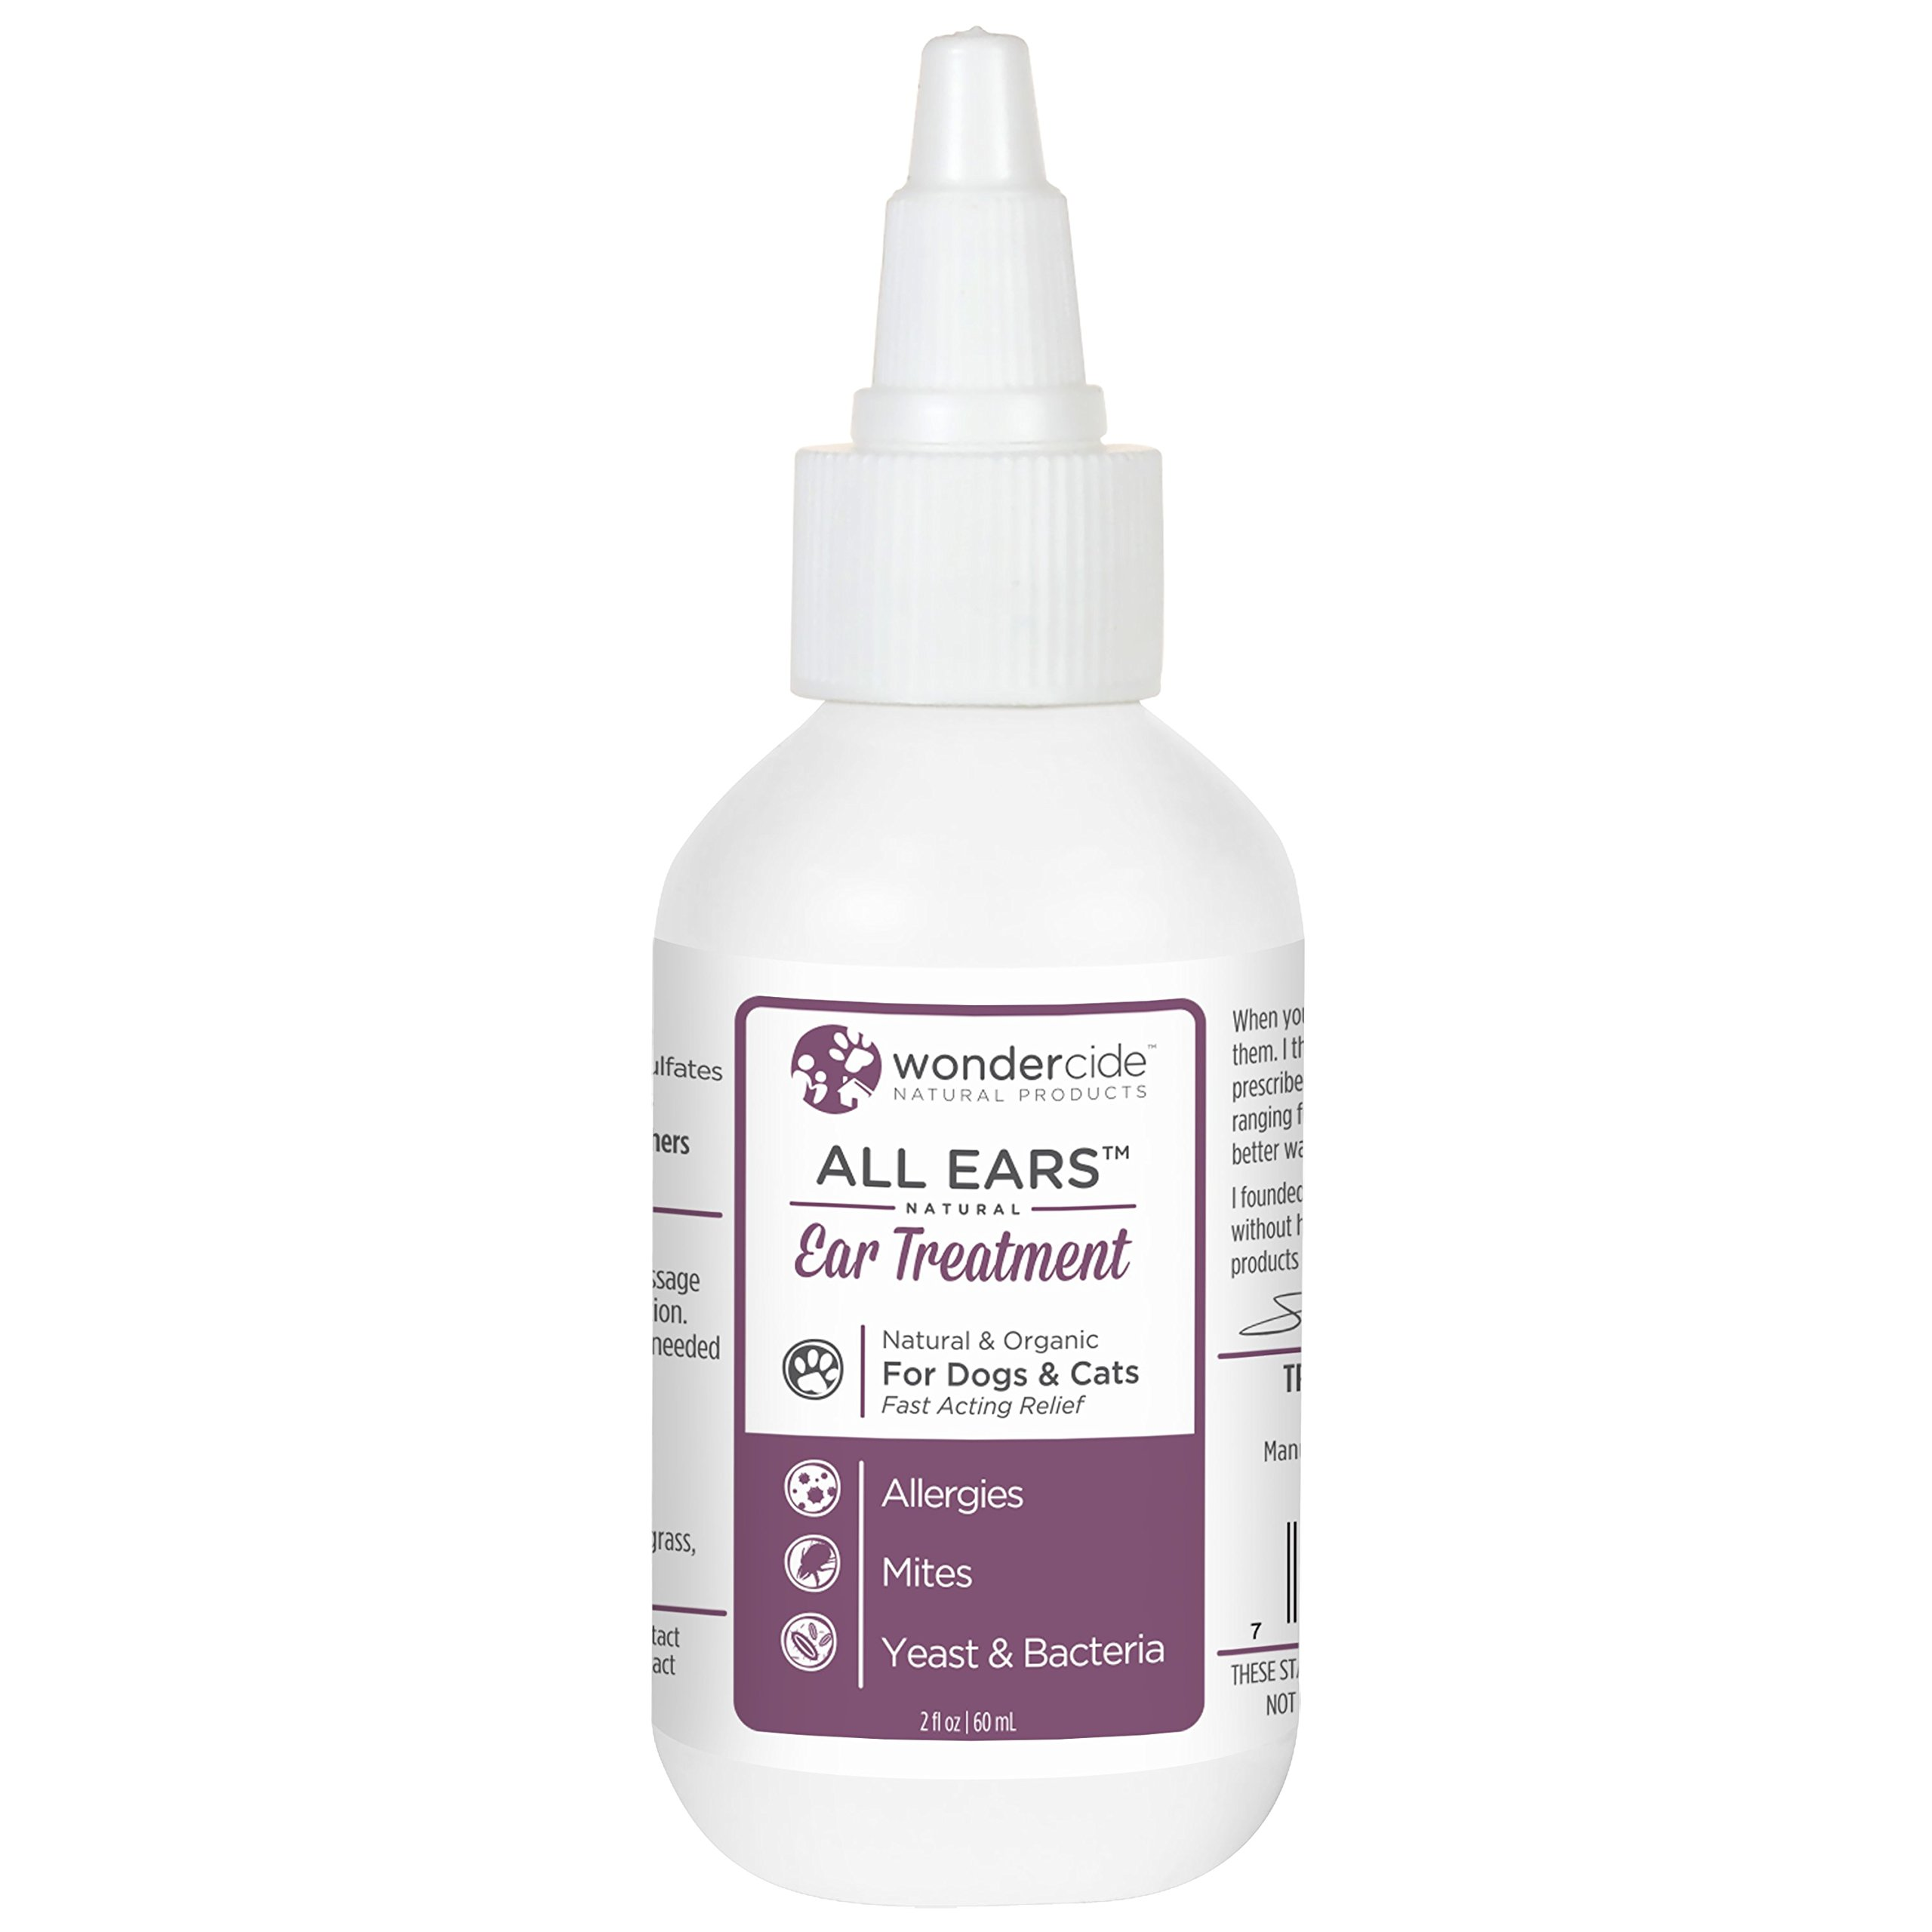 Wondercide All Ears Natural Ear Mite and Infection Treatment for Dogs and Cats - 60 ml